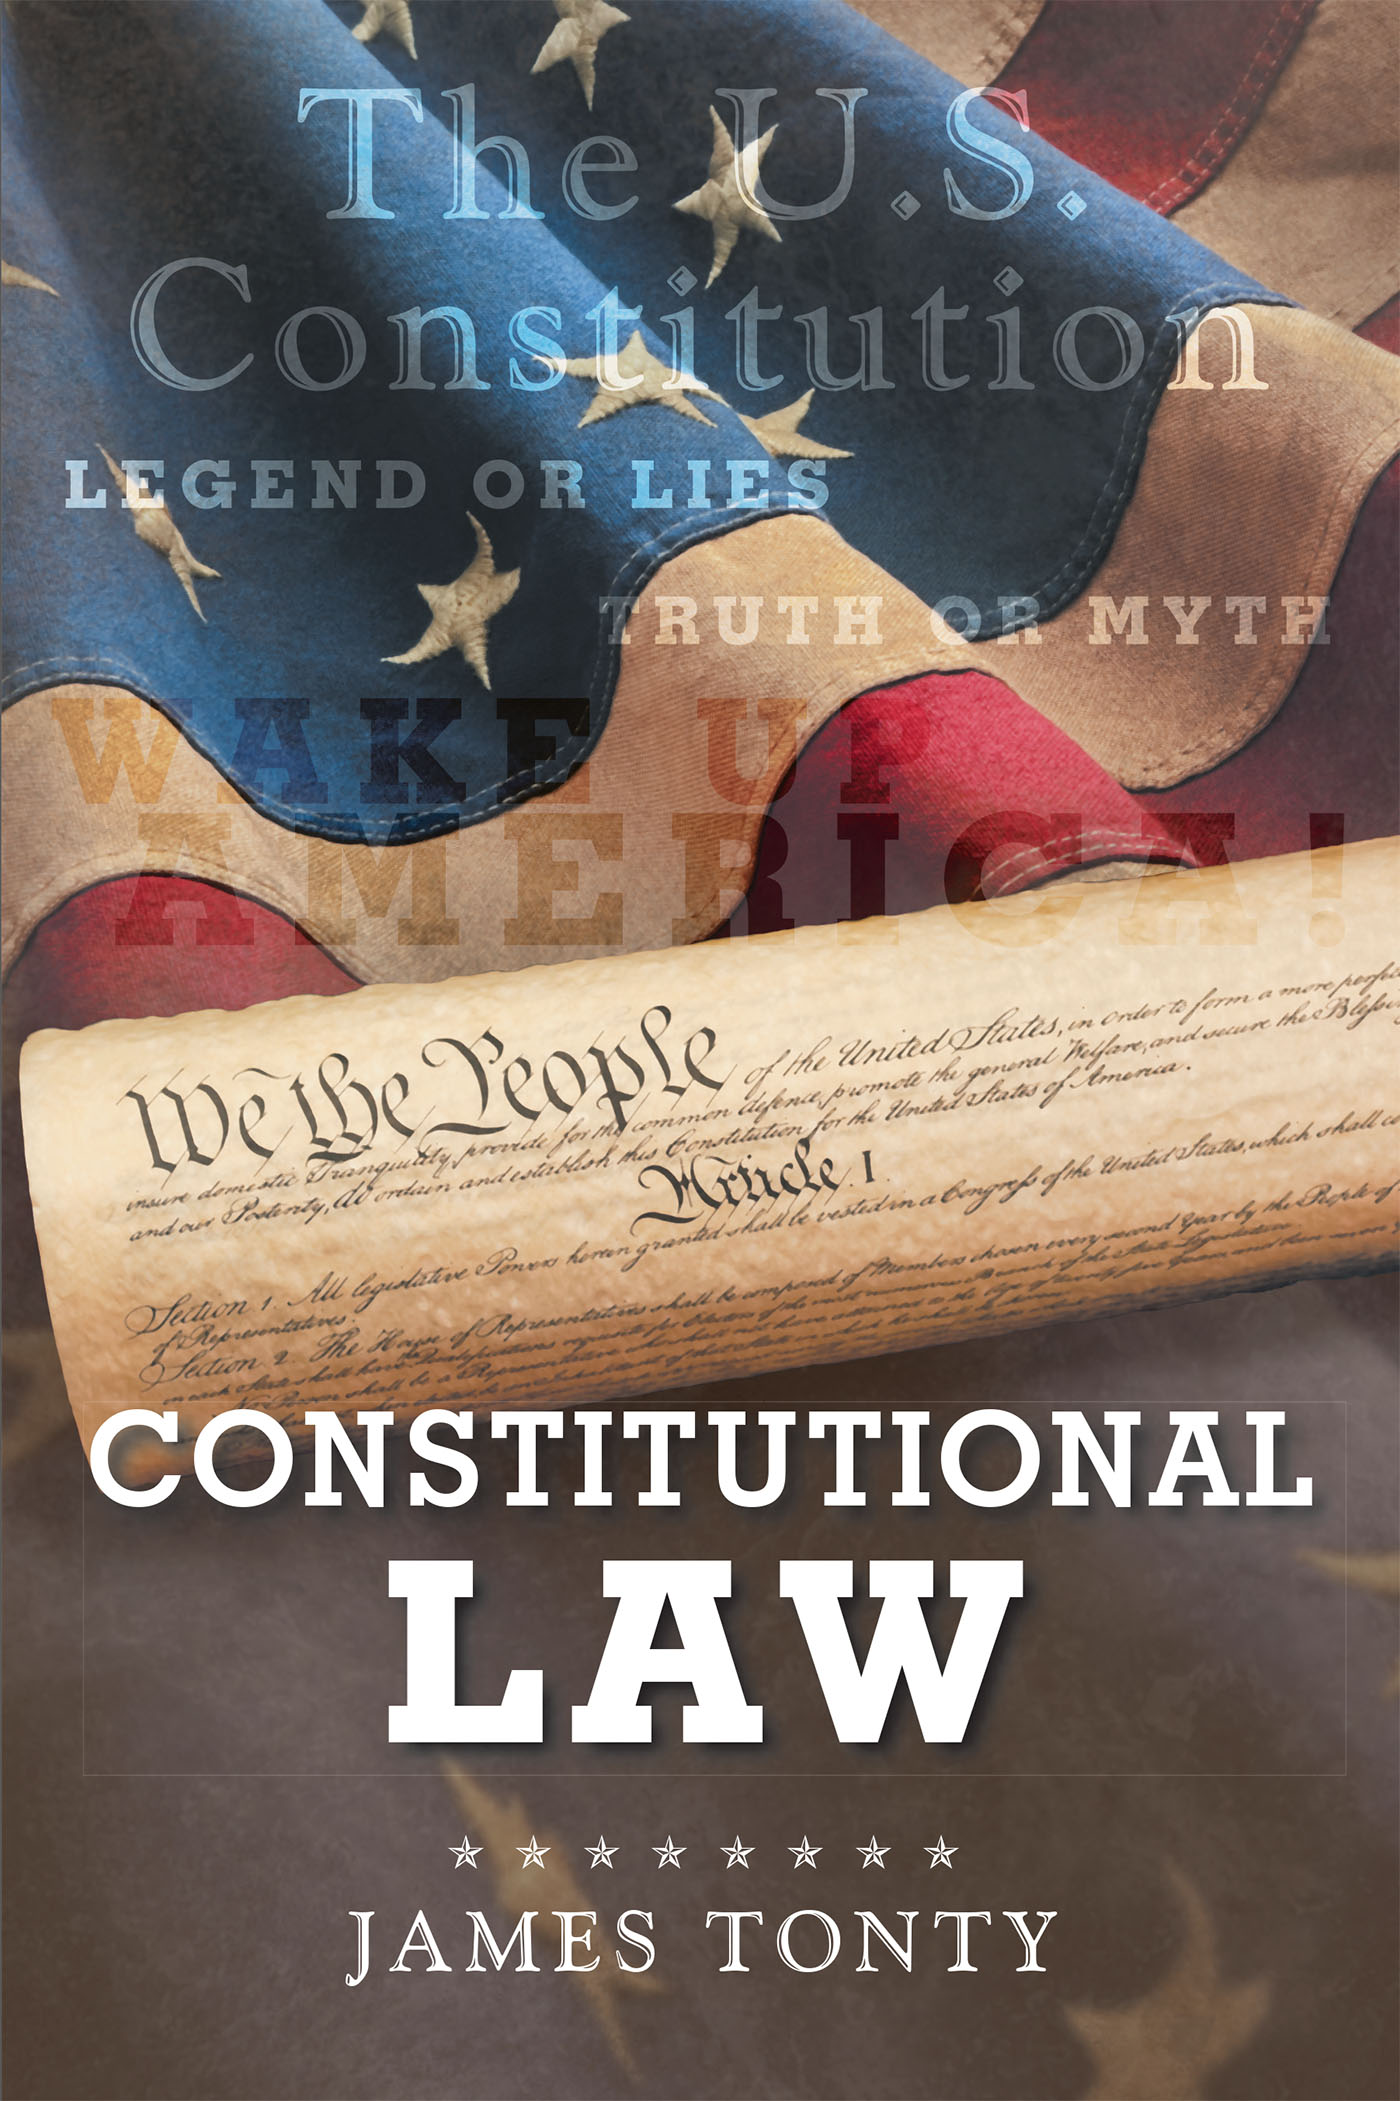 constitutional law and constitutionalism Constitutionalism is a complex of ideas, attitudes, and patterns of behavior elaborating the principle that the authority of government derives from and is limited by a body of fundamental law.